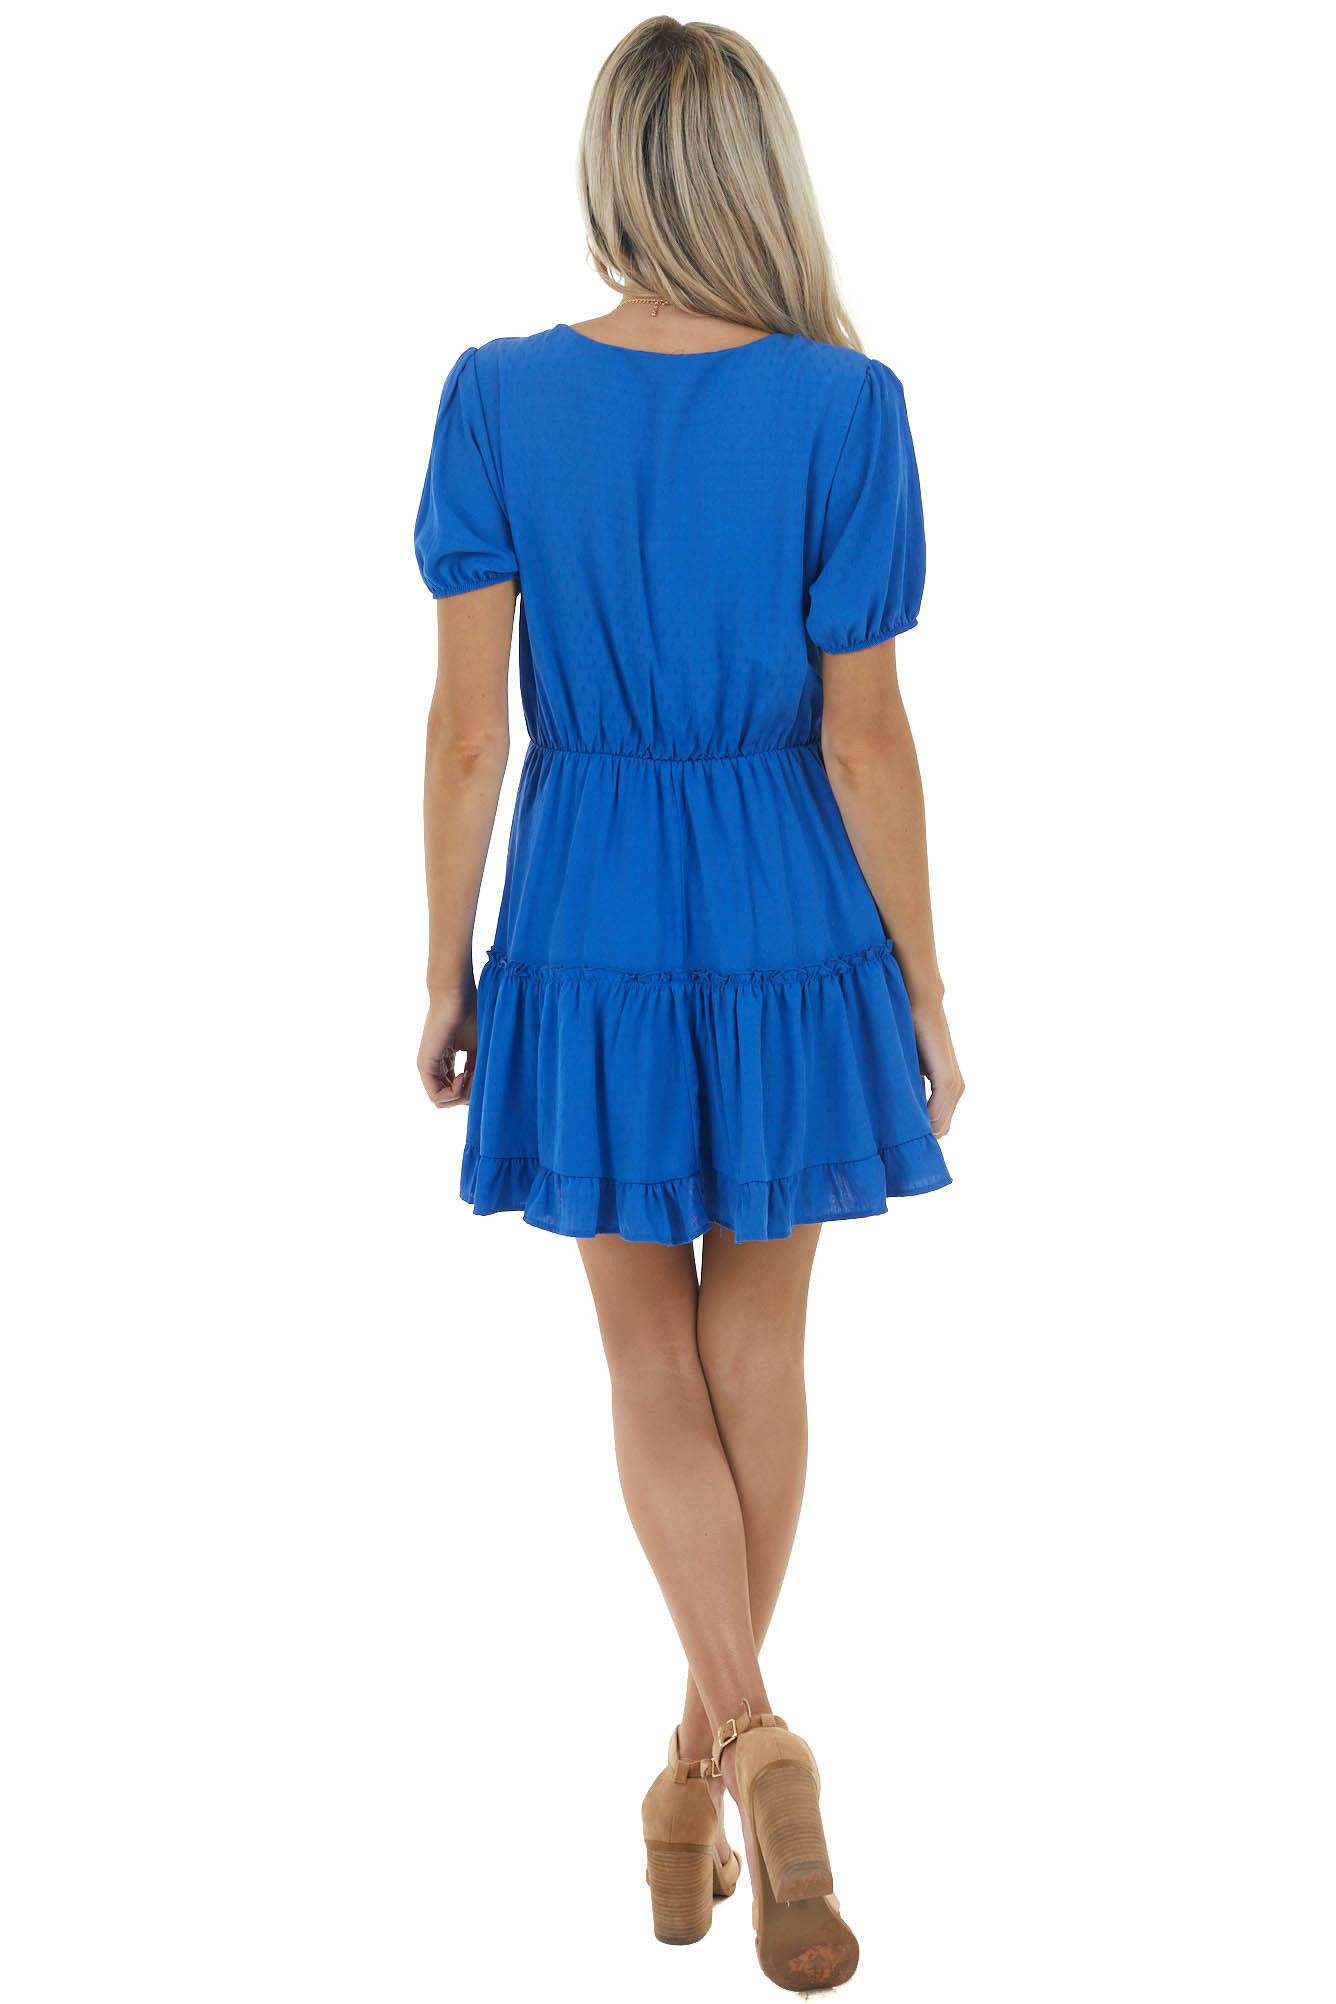 Royal Blue Surplice Short Sleeve Mini Dress with Ruffles